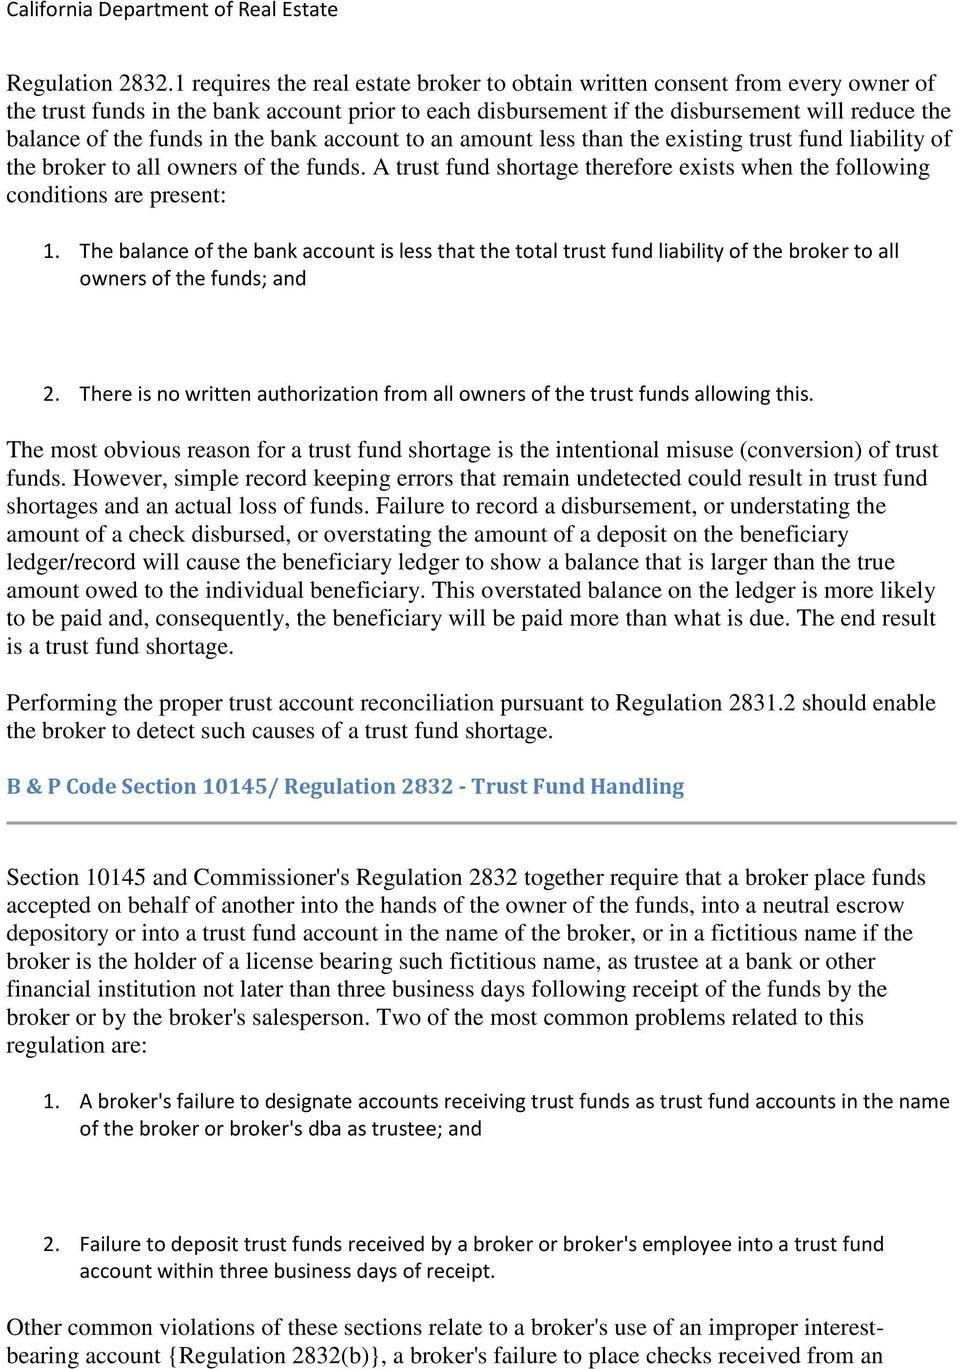 in the bank account to an amount less than the existing trust fund liability of the broker to all owners of the funds.